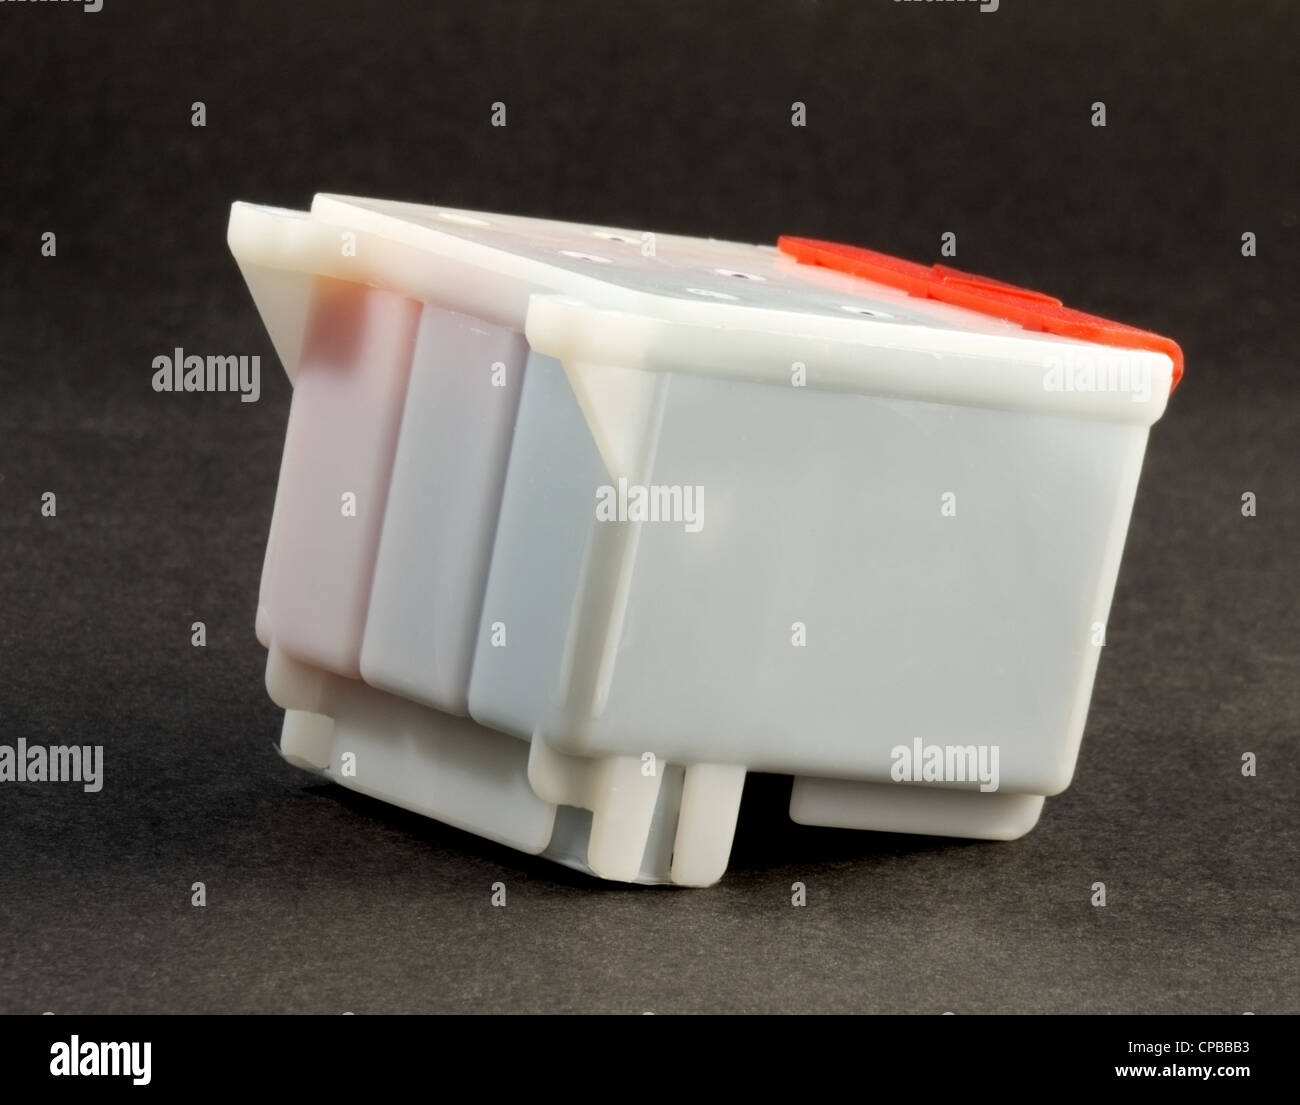 Compatible ink cartridge - Stock Image